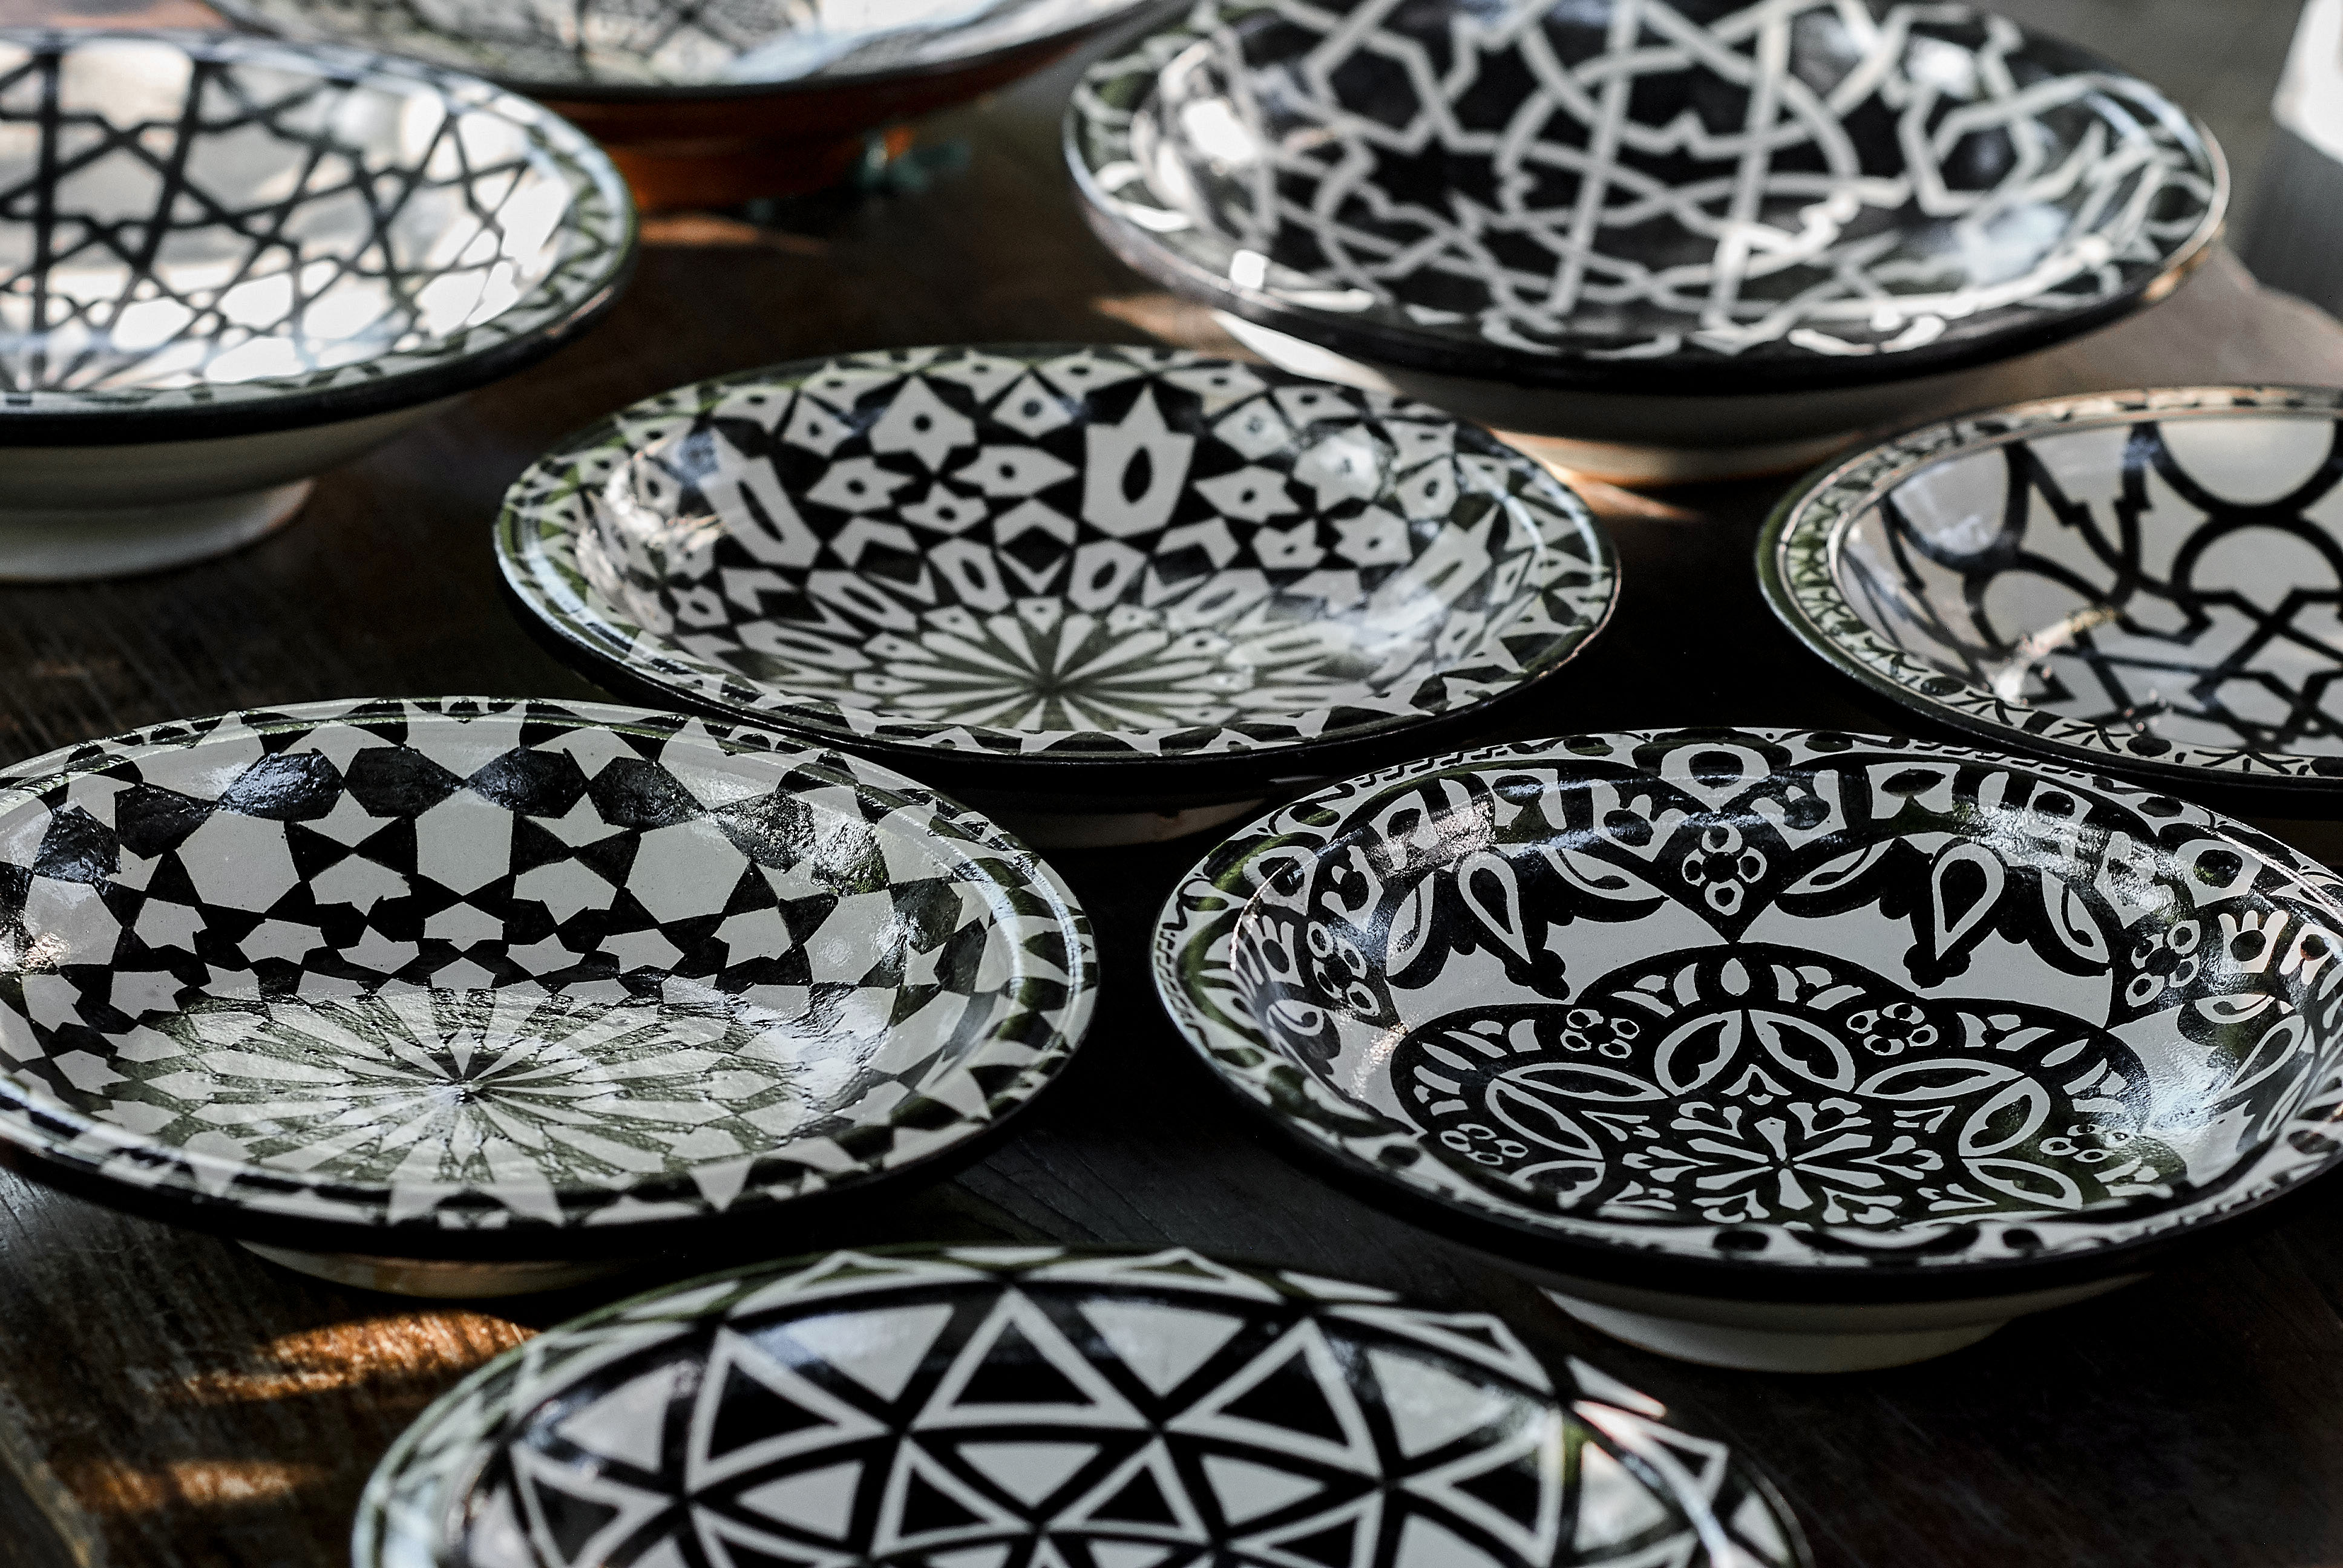 Plates and trays